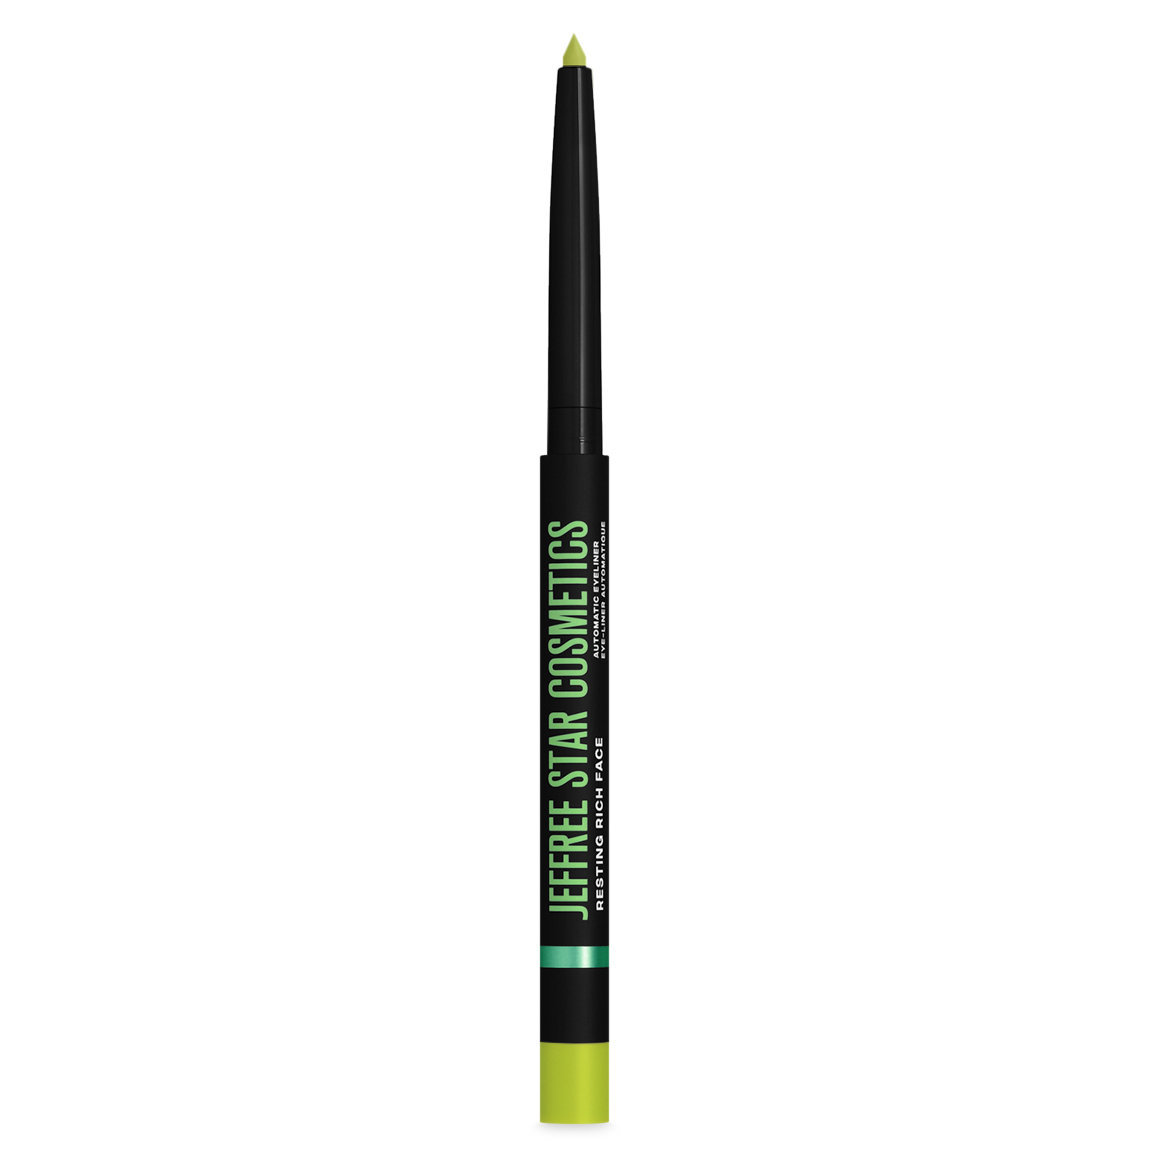 Jeffree Star Cosmetics Automatic Eyeliner Money Counter alternative view 1.